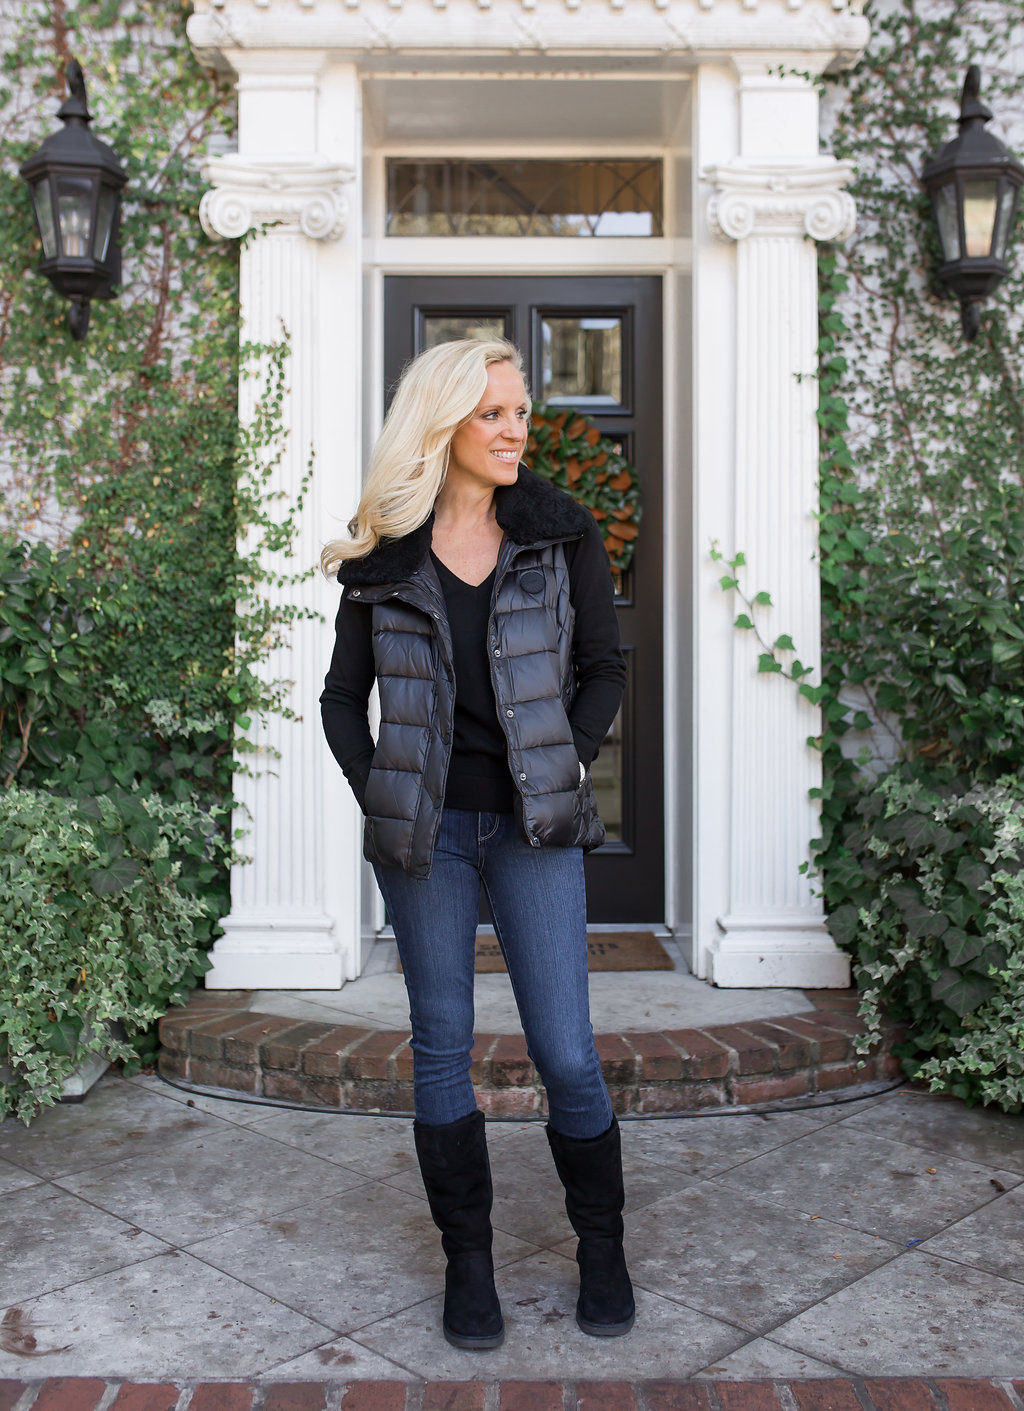 Alicia Wood, Dallas Lifestyle Blog, Dallas Lifestyle Blogger, Dallas Fashion blogger, Ugg Shearling Trim Vest, Ugg Kara Slim boot